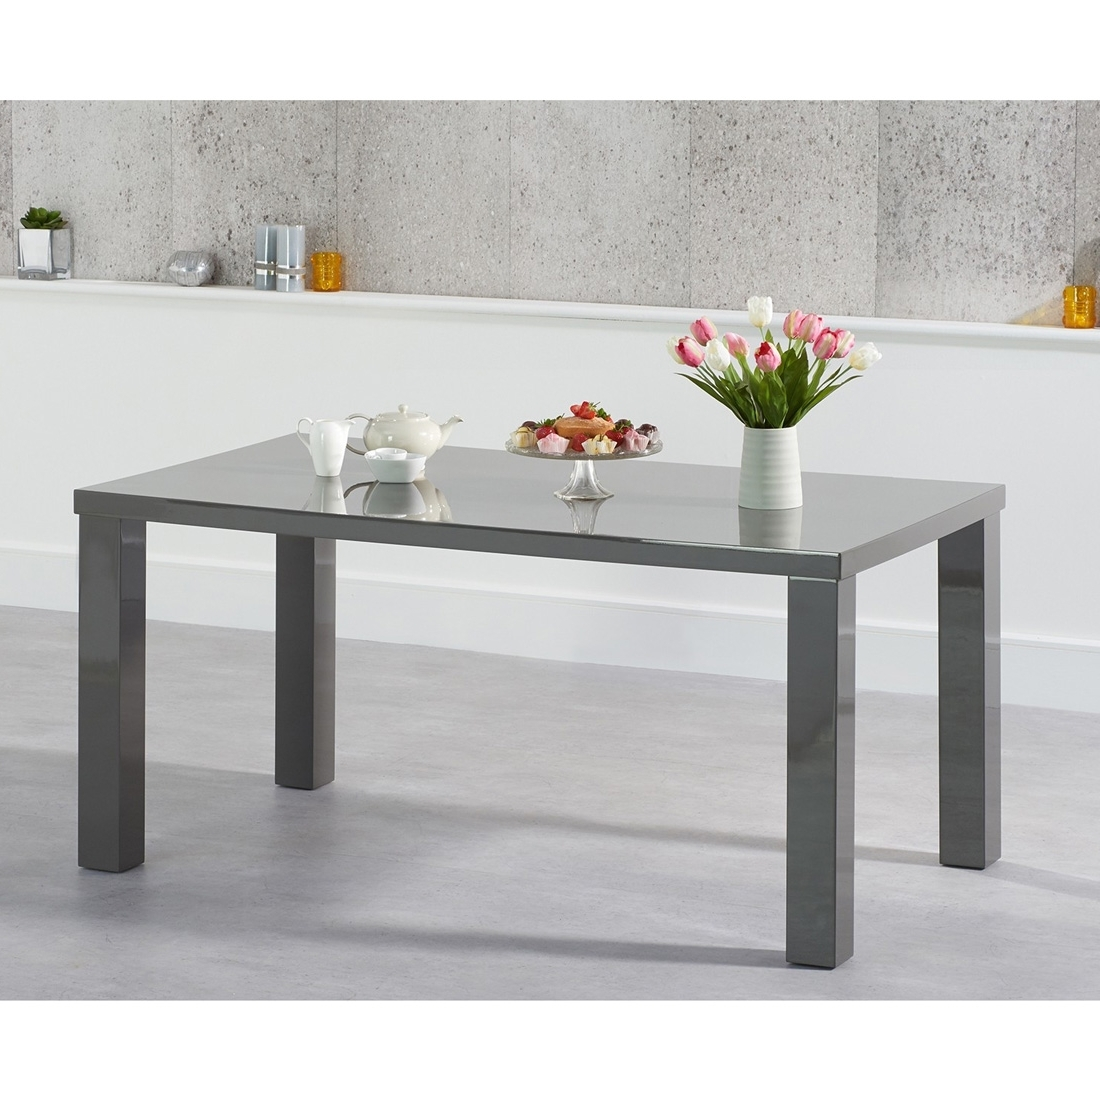 Fads With Regard To Latest Grey Gloss Dining Tables (View 16 of 25)